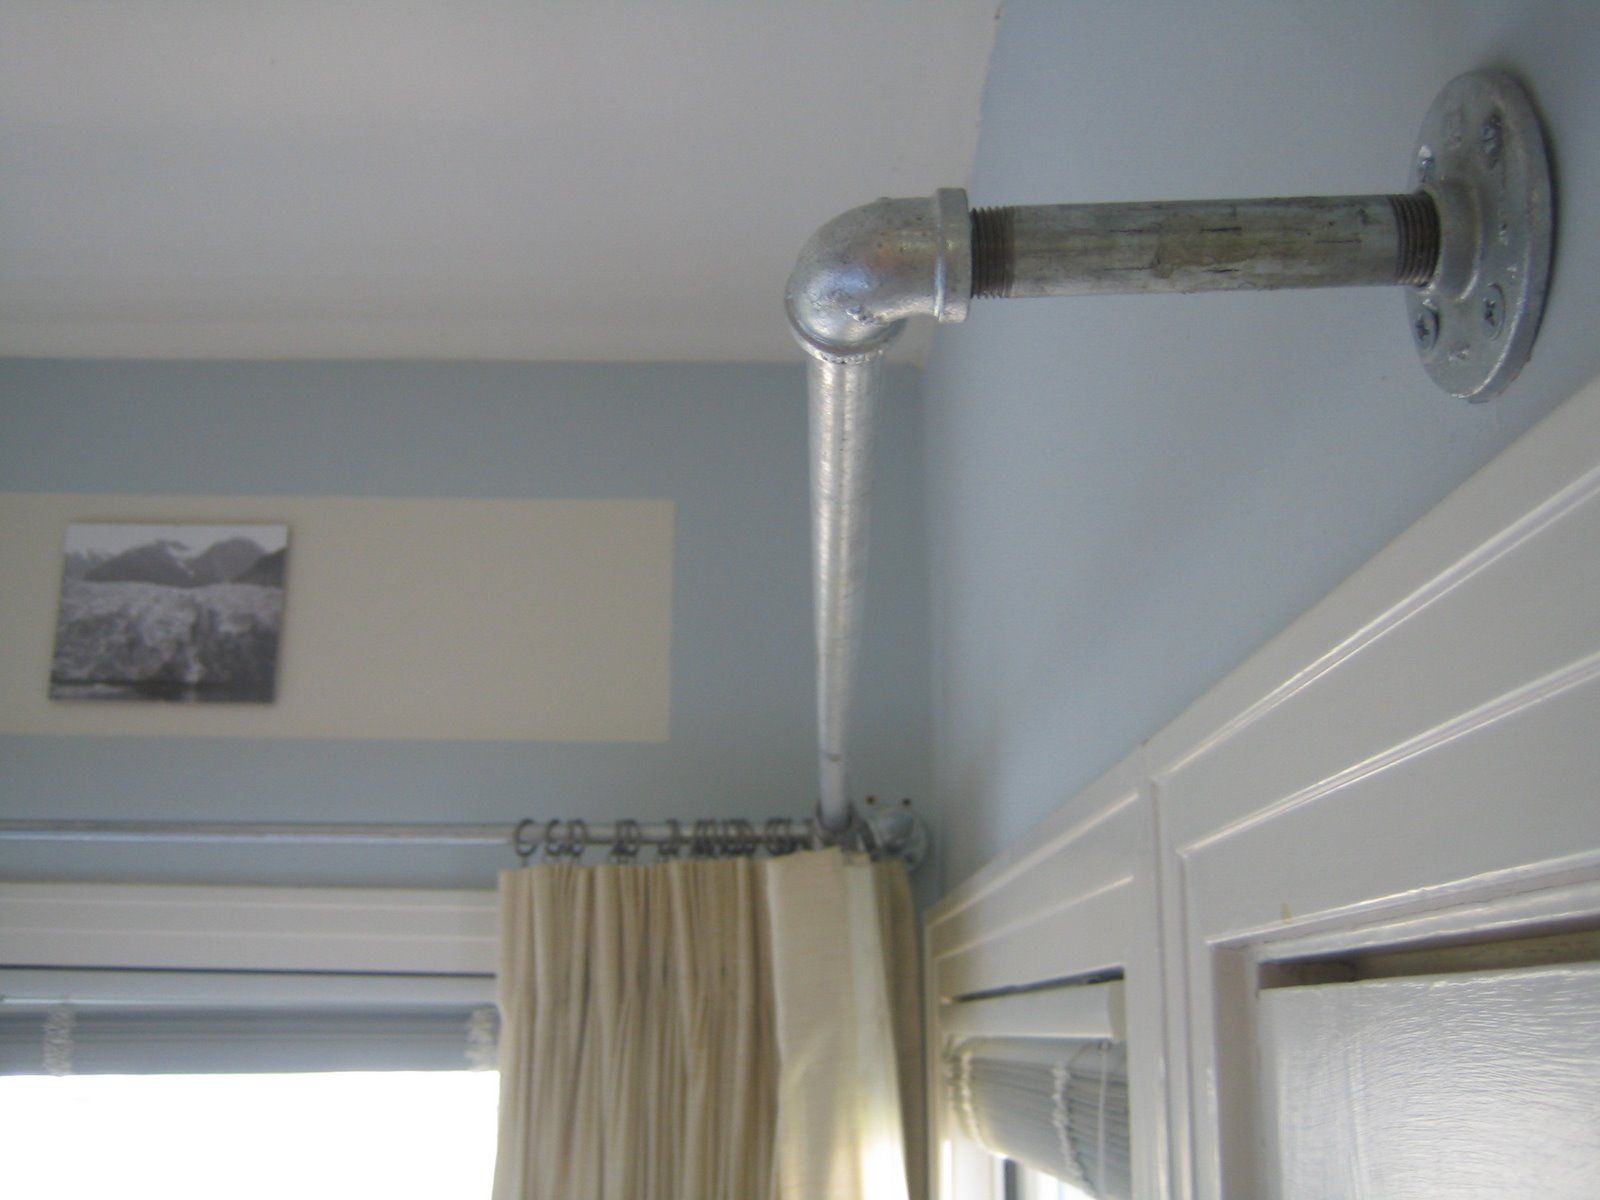 window galvanized pipe curtain rods could be used for curtains for closet